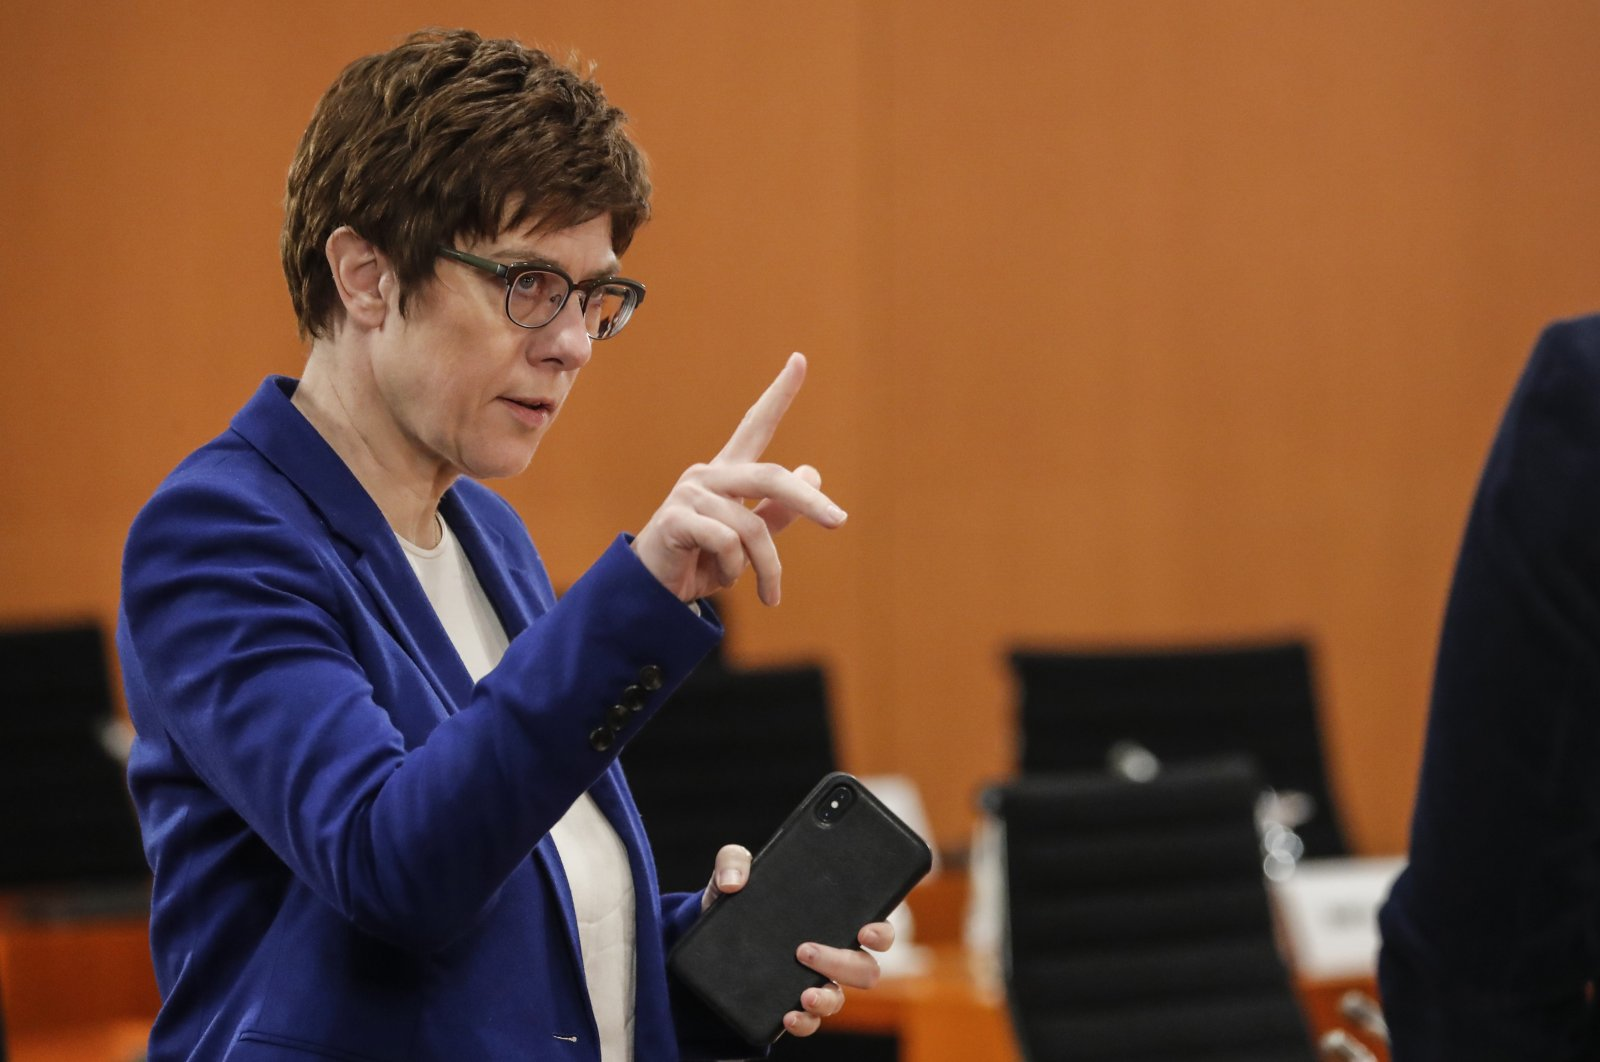 German Defense Minister Annegret Kramp-Karrenbauer gestures prior to the weekly Cabinet meeting at the Chancellery in Berlin, Germany, April 1, 2020. (AP Photo)